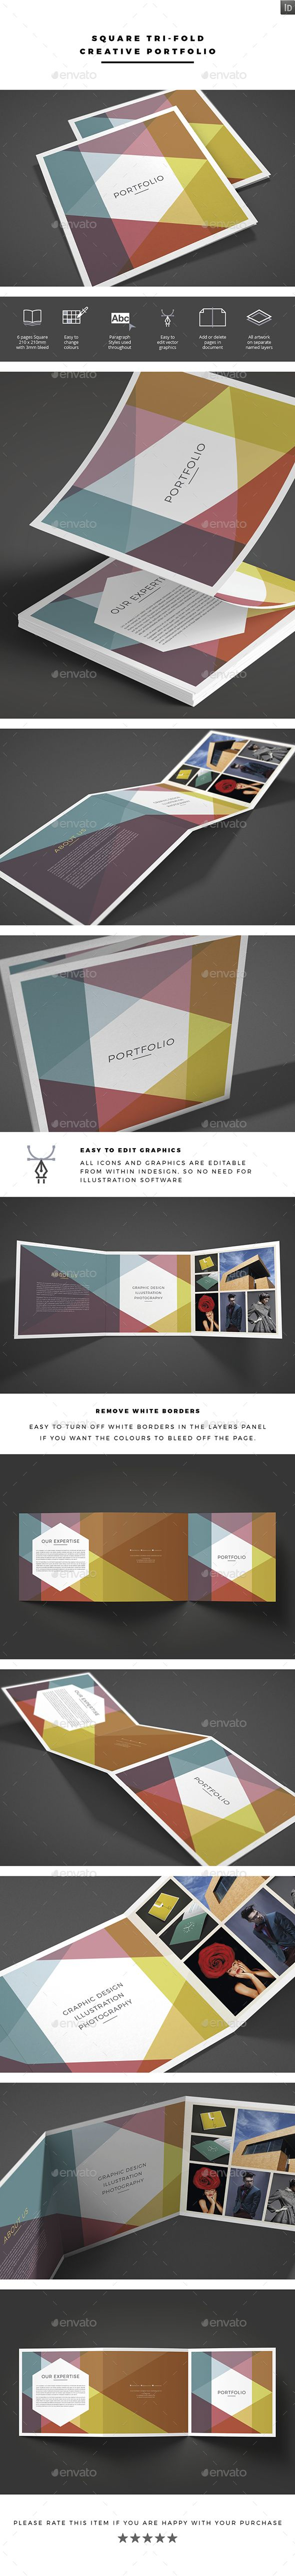 Square Tri-fold Creative Portfolio Brochure Template 	InDesign INDD. Download here: https://graphicriver.net/item/square-trifold-creative-portfolio/17074211?ref=ksioks